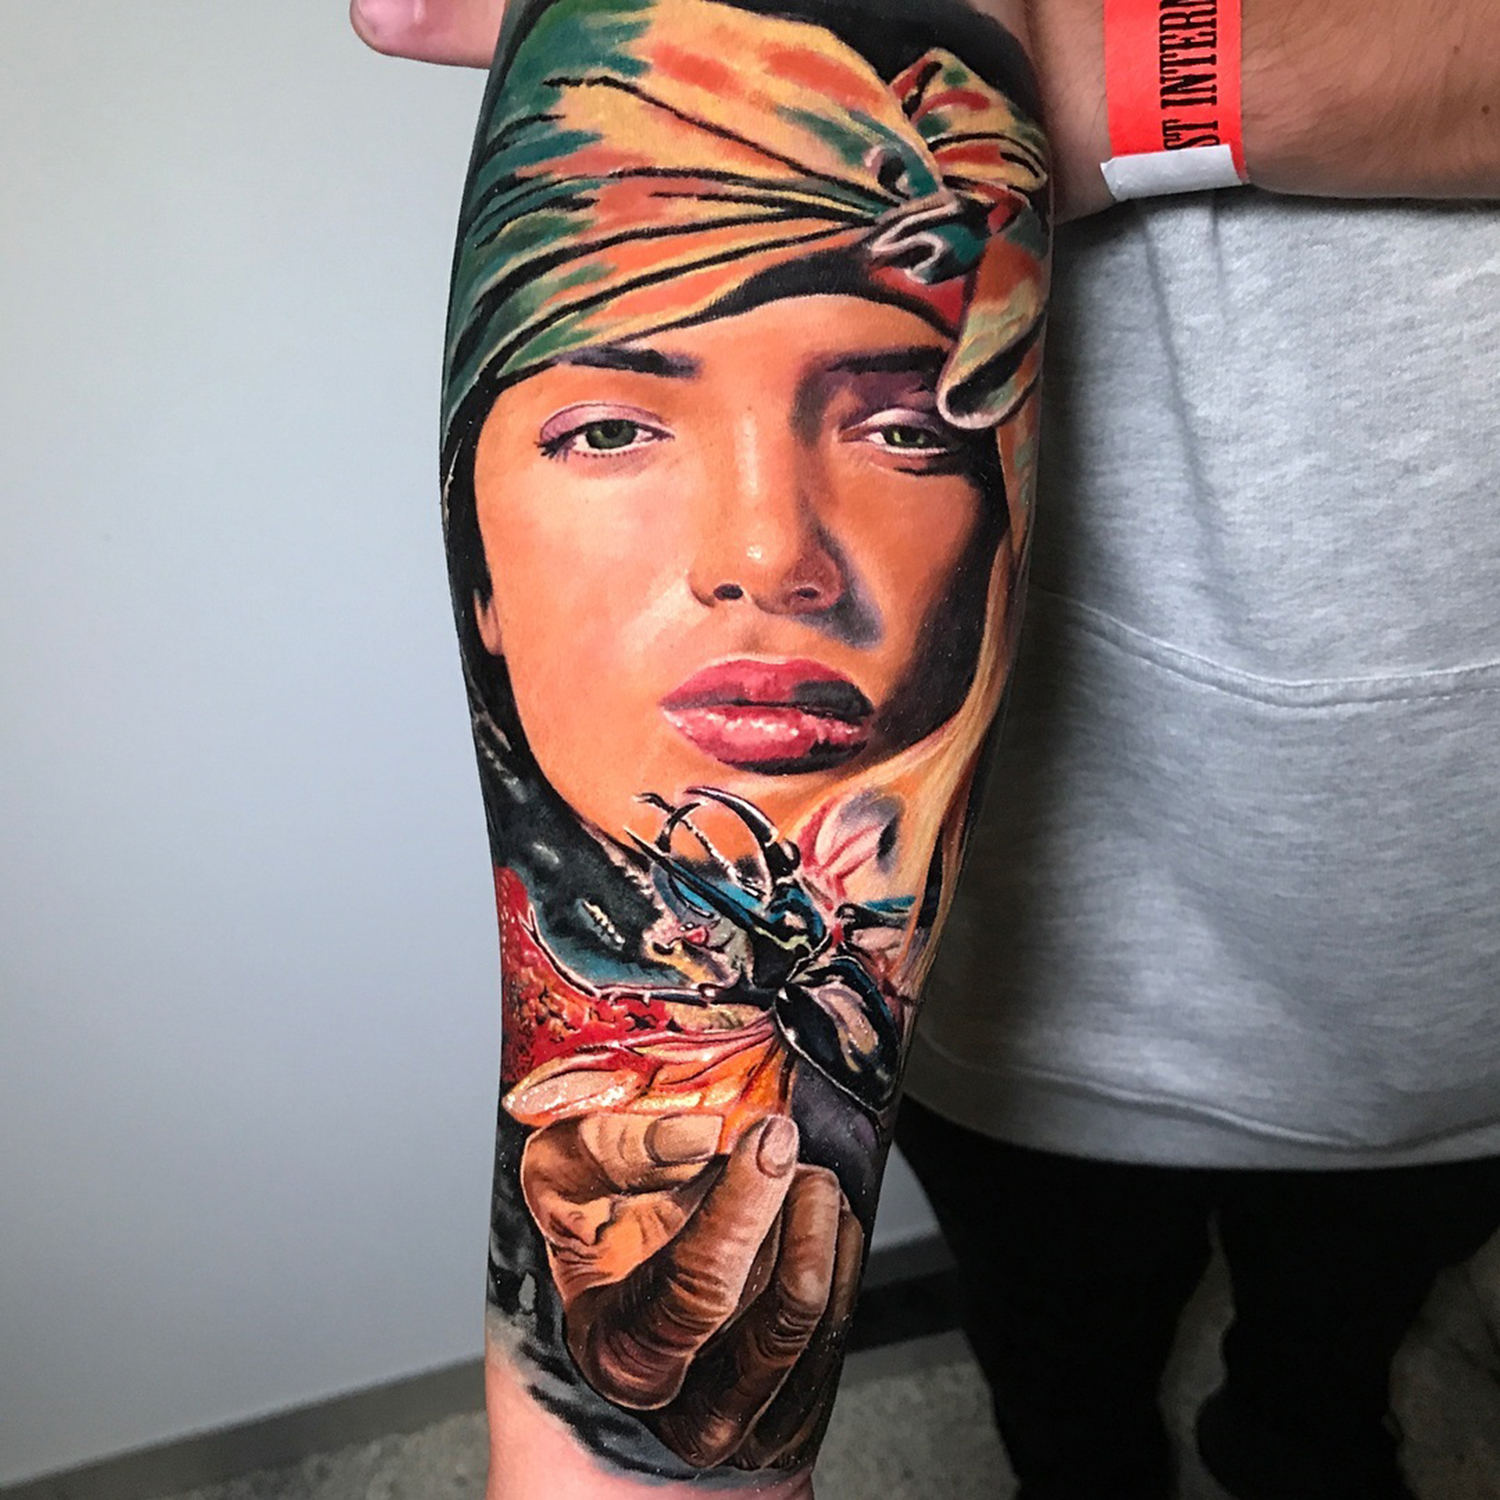 colorful portrait, realistic tattoo on arm, tattoo convention